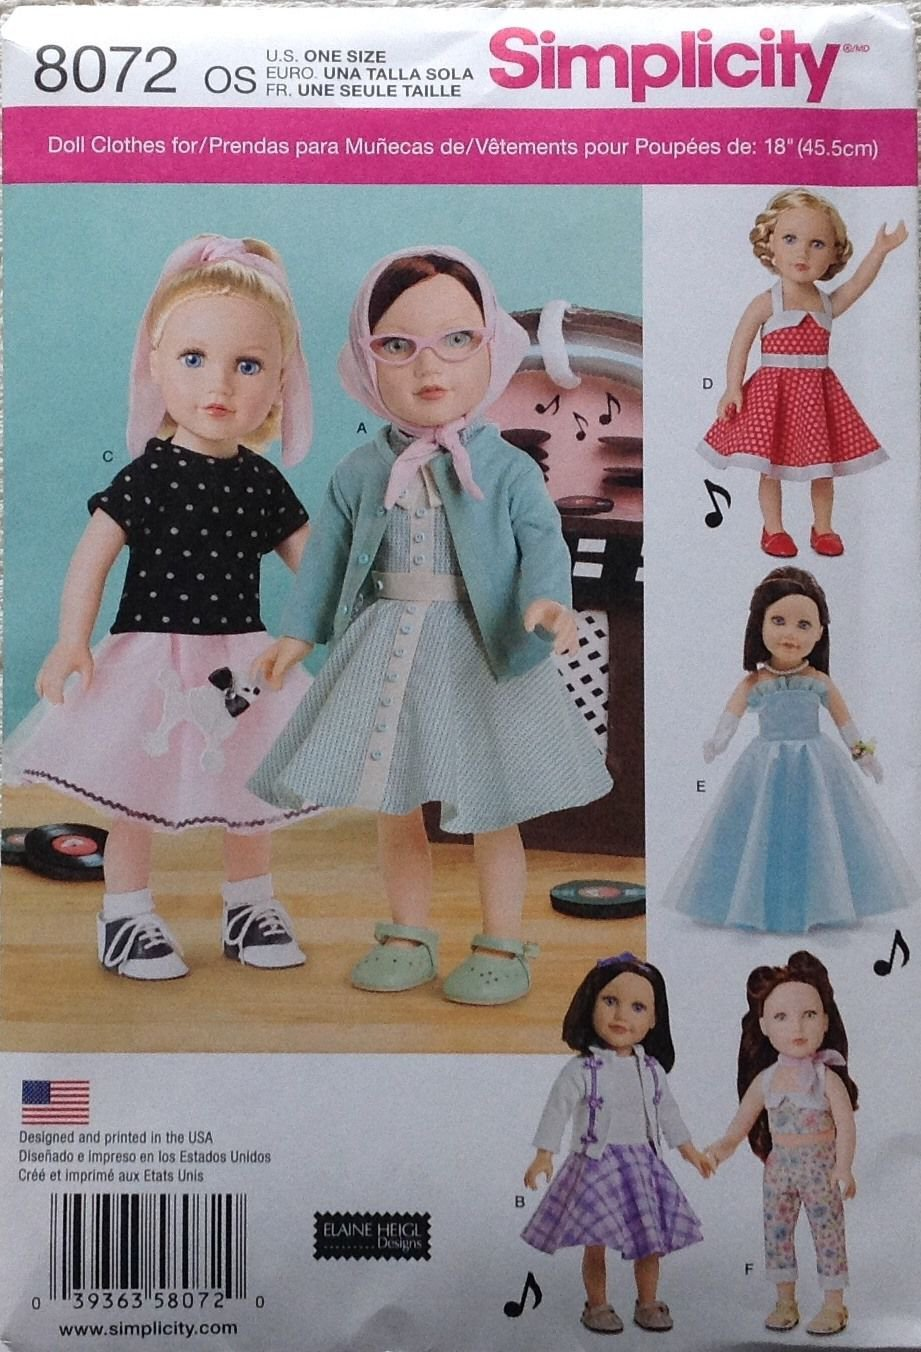 SIMPLICITY 8072 AMERICAN GIRL 18 DOLL CLOTHES PATTERN 1950s DRESS SWEATER SET POODLE SKIRT NEW